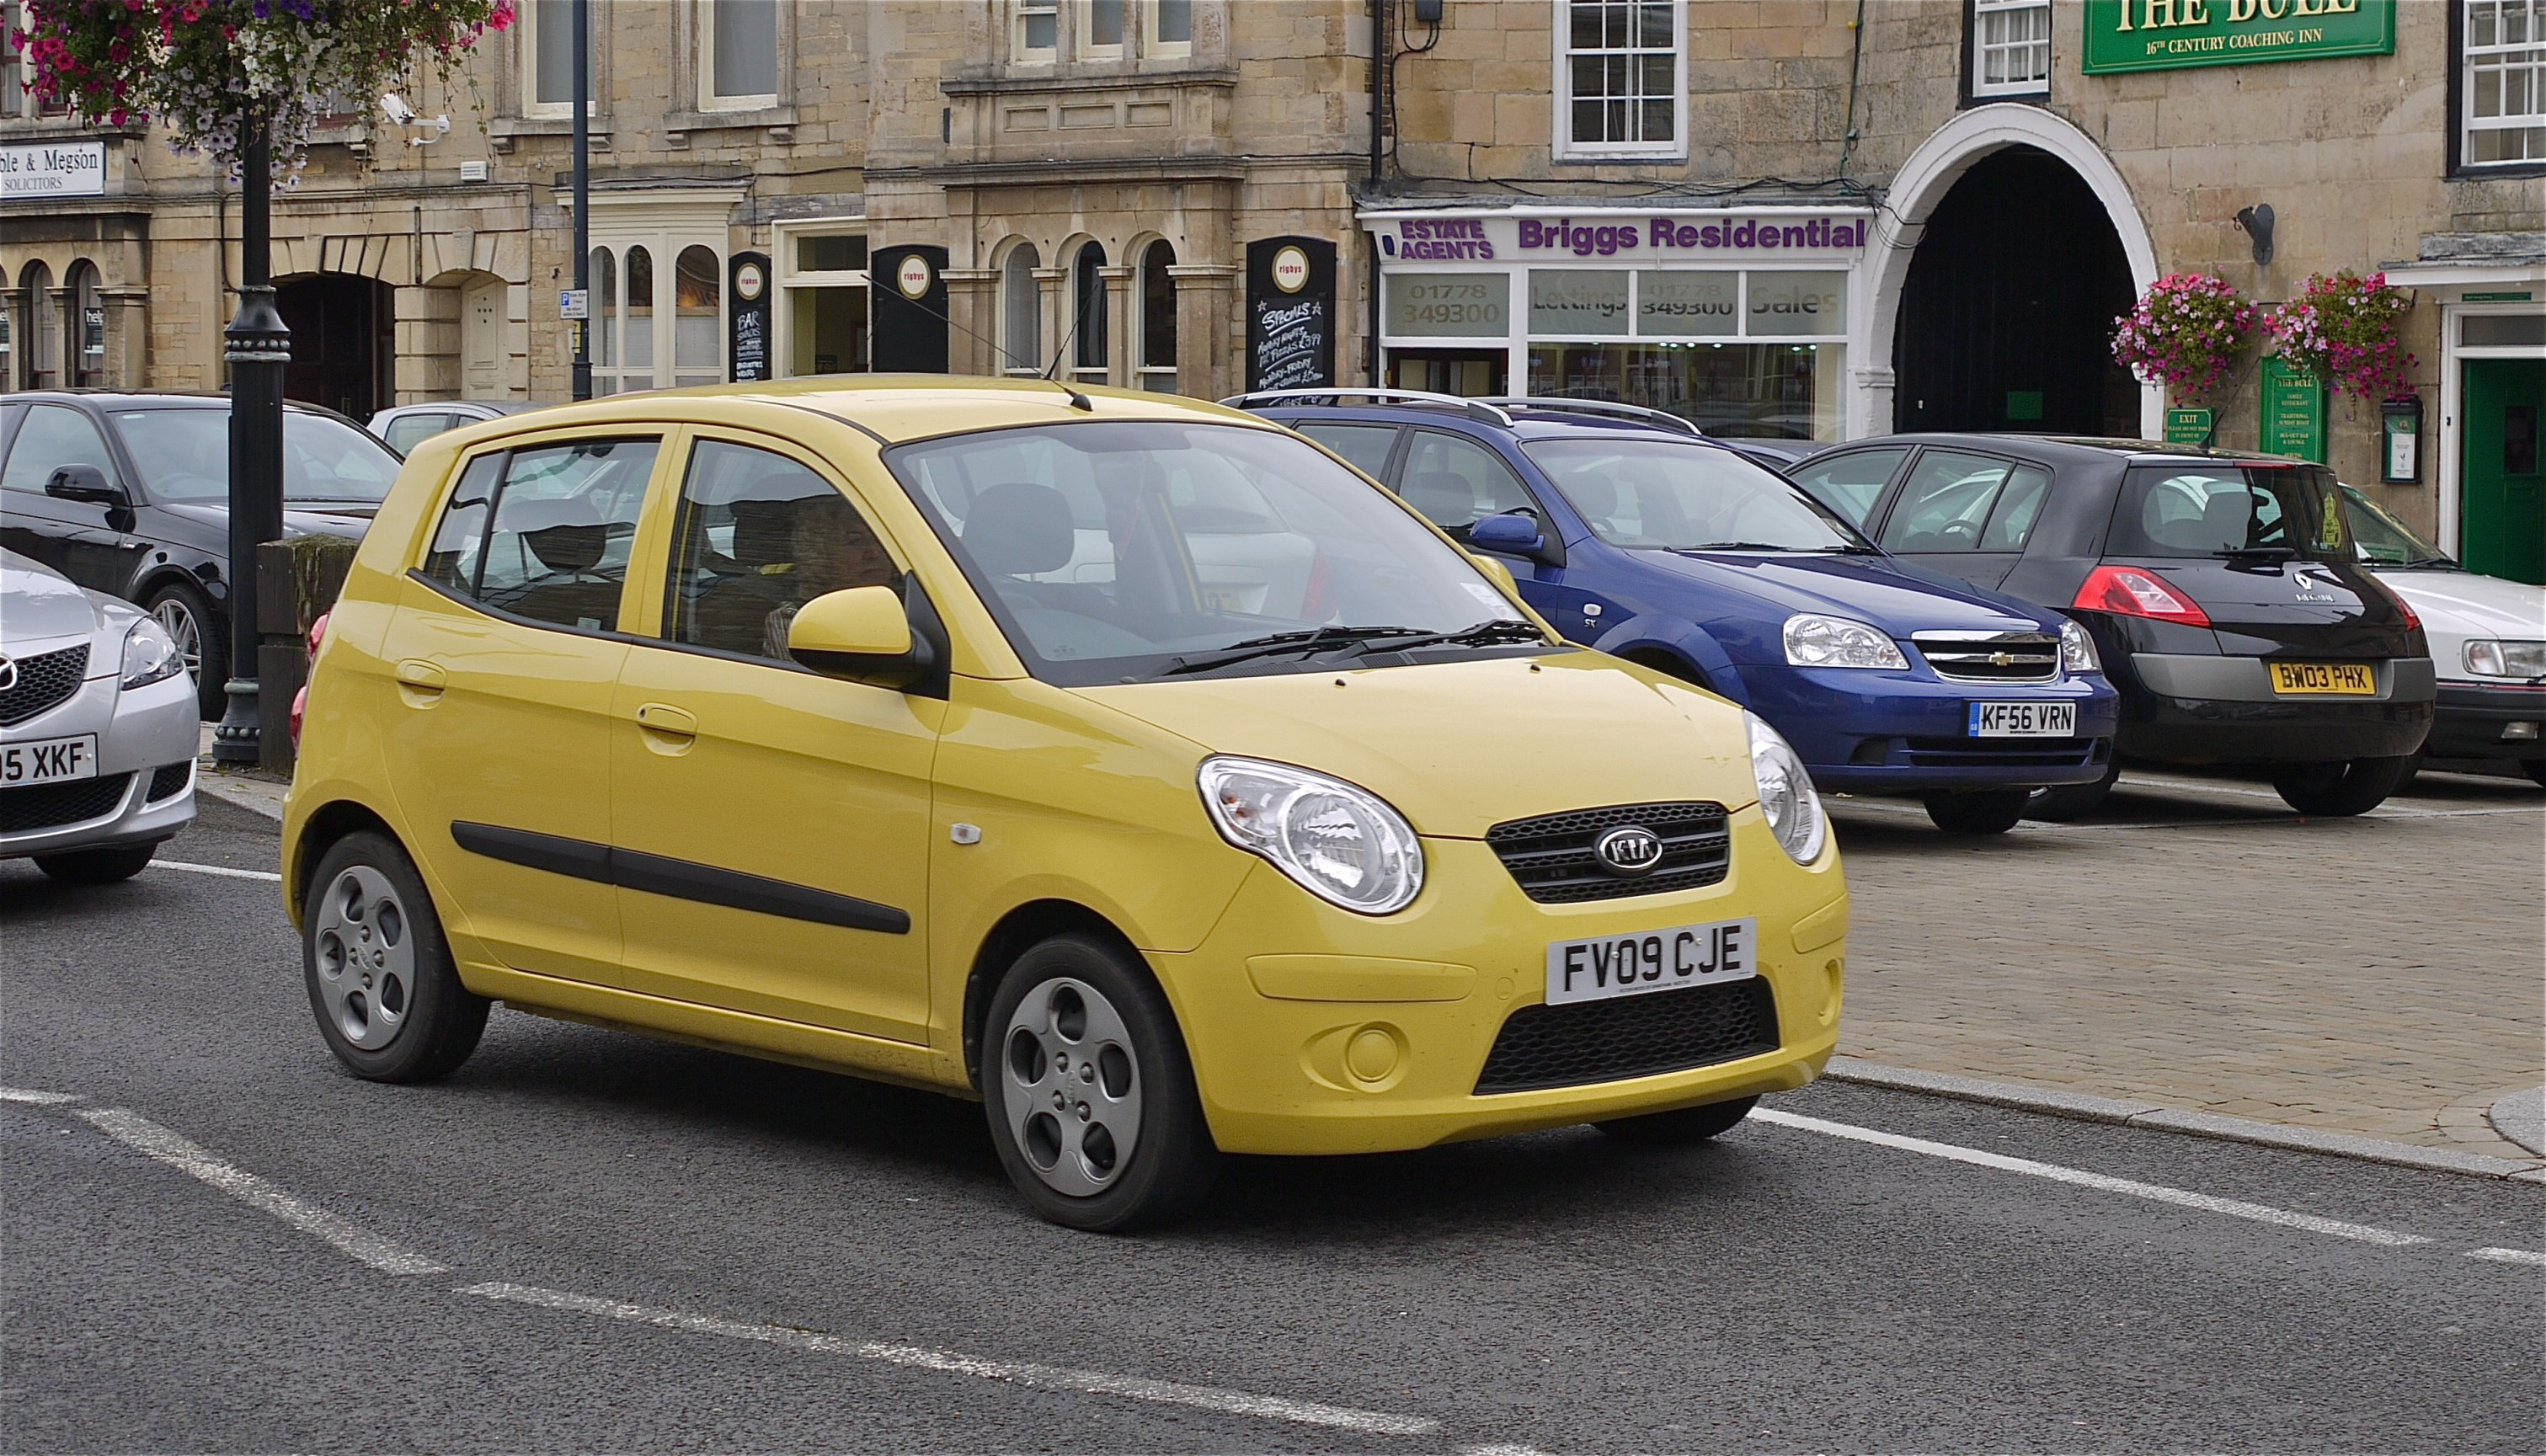 file kia picanto not many yellow versions in the uk flickr mick wikimedia commons. Black Bedroom Furniture Sets. Home Design Ideas